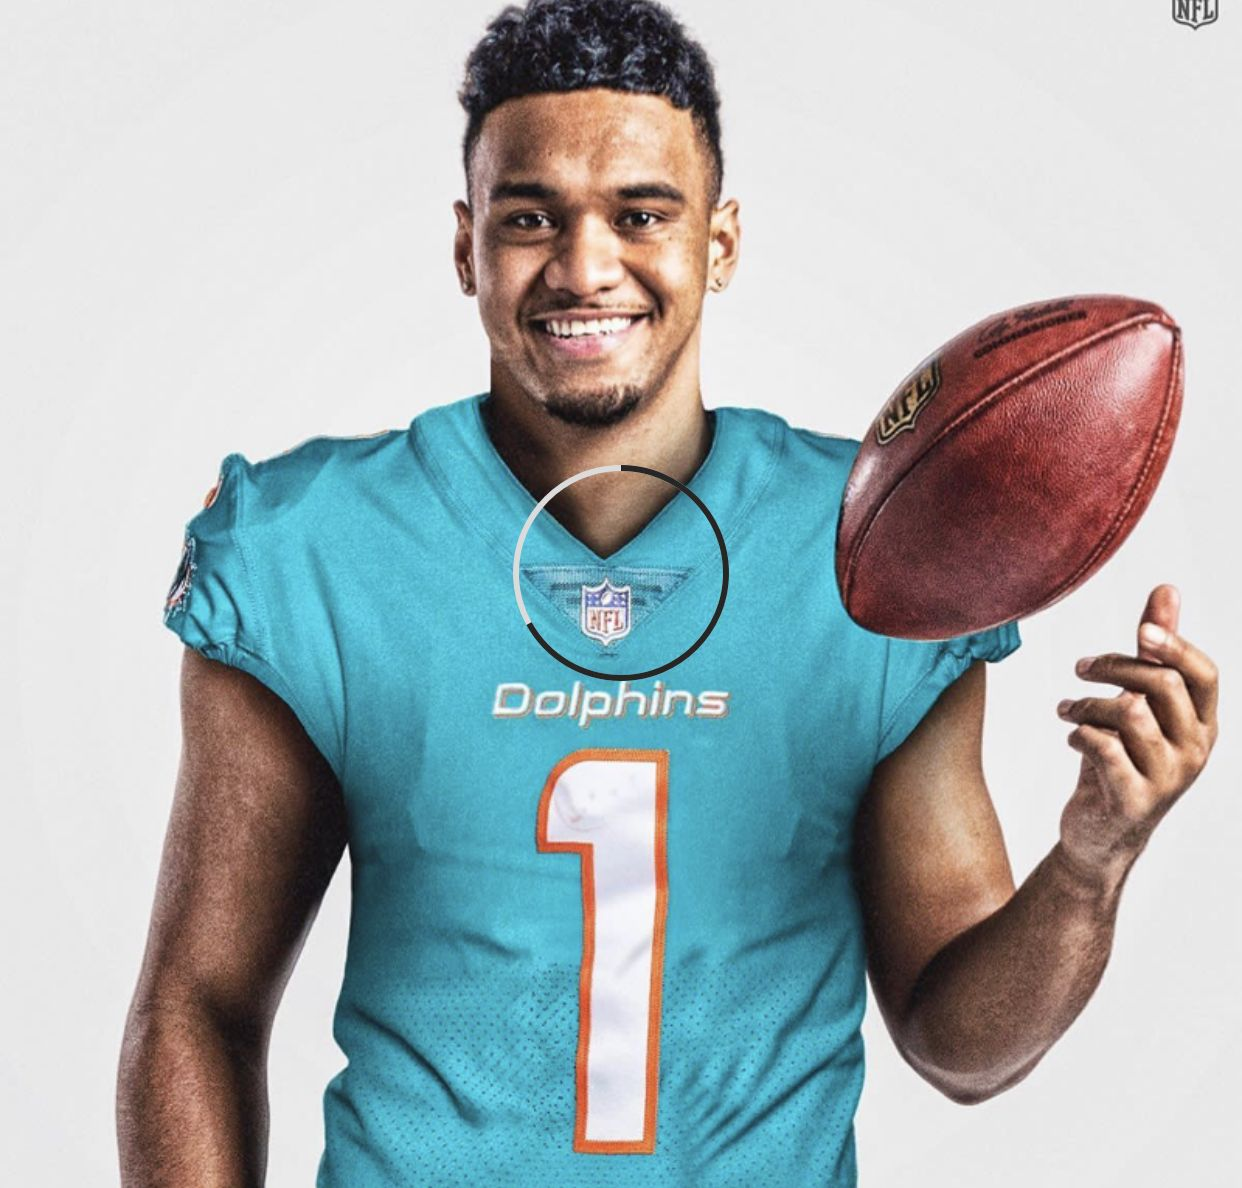 Pin by Autumn Padgett on tua in 2020 Nfl dolphins